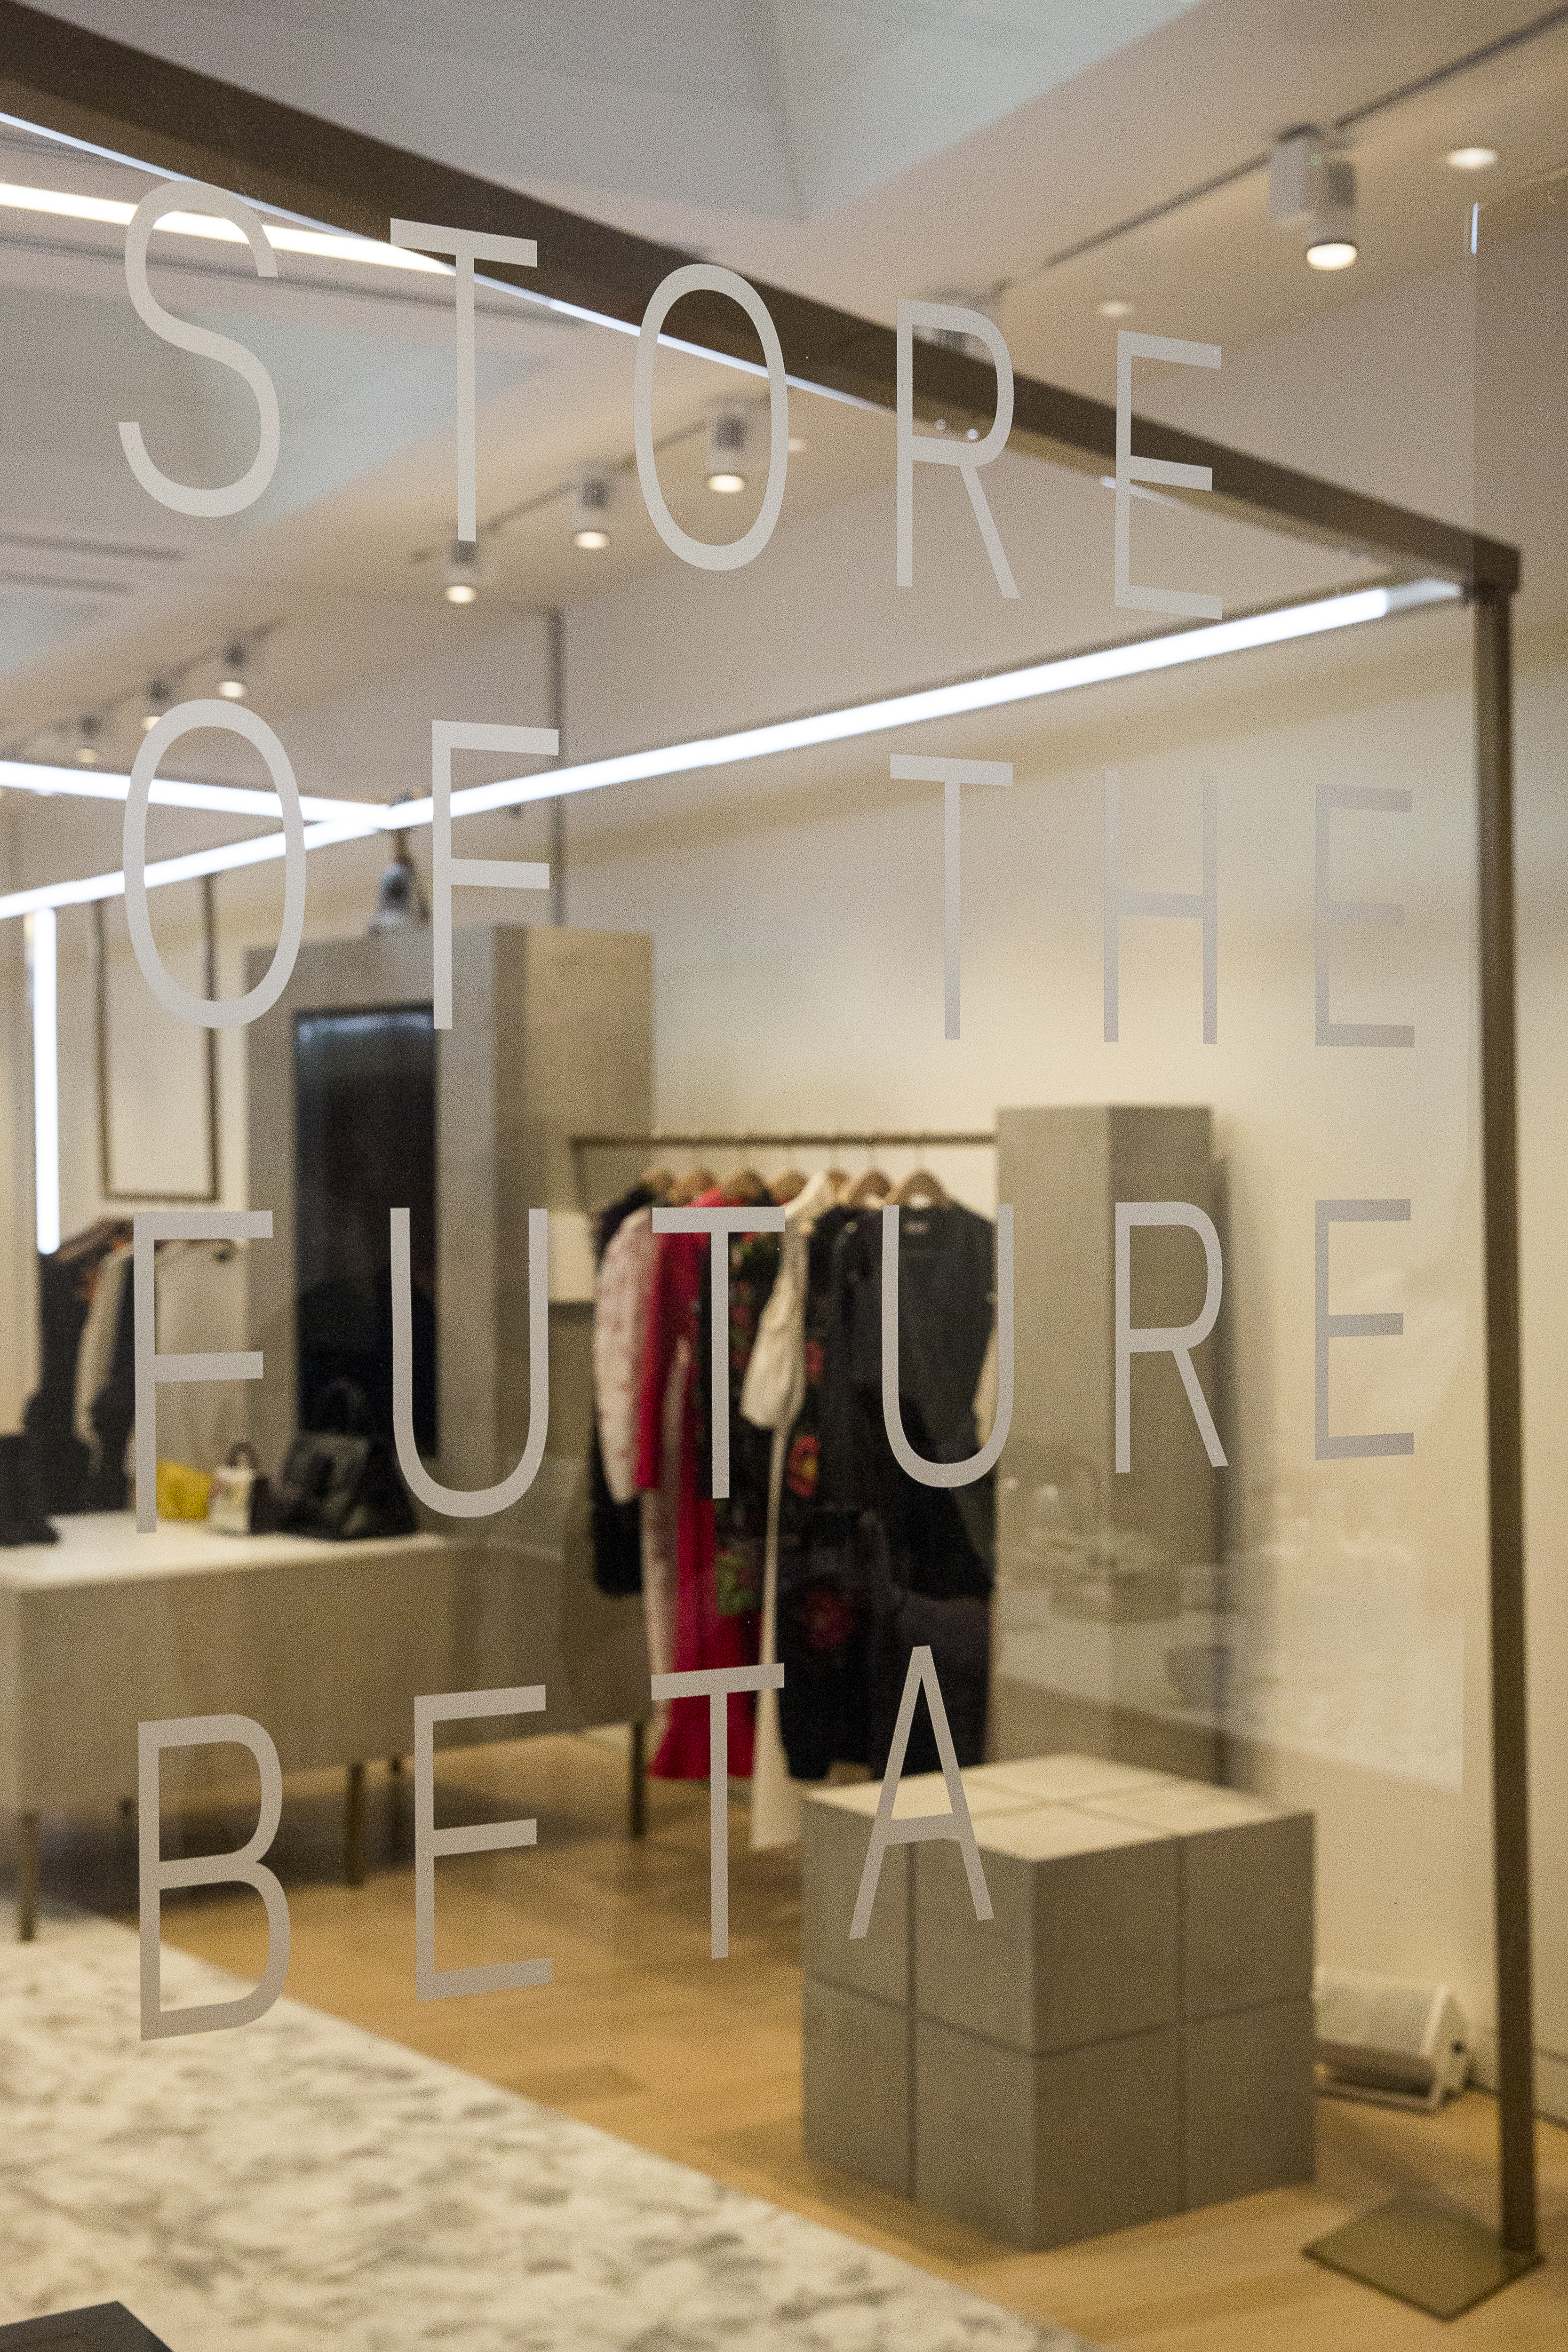 6f1da44f20 That way consumers can get VIP treatment in hundreds of boutiques around  the world. People saw the utility potential in Uber – if they see the  utility value ...